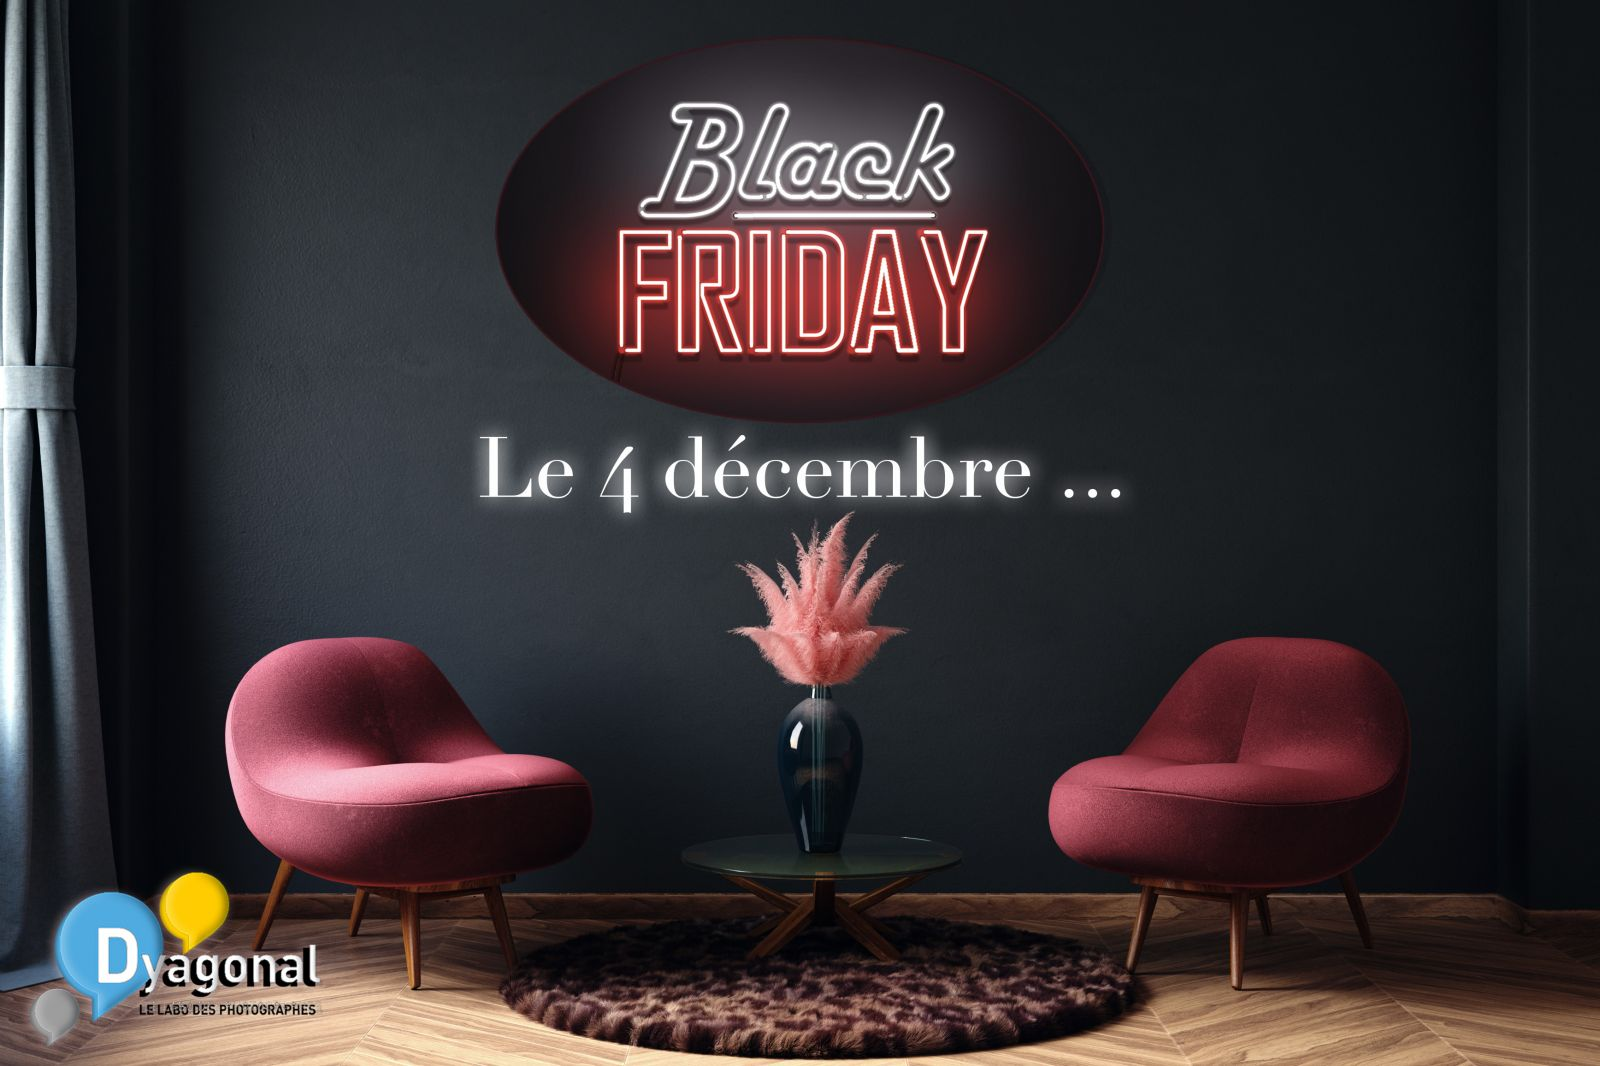 Black Friday le 4 décembre au Labo Photo Dyagonal